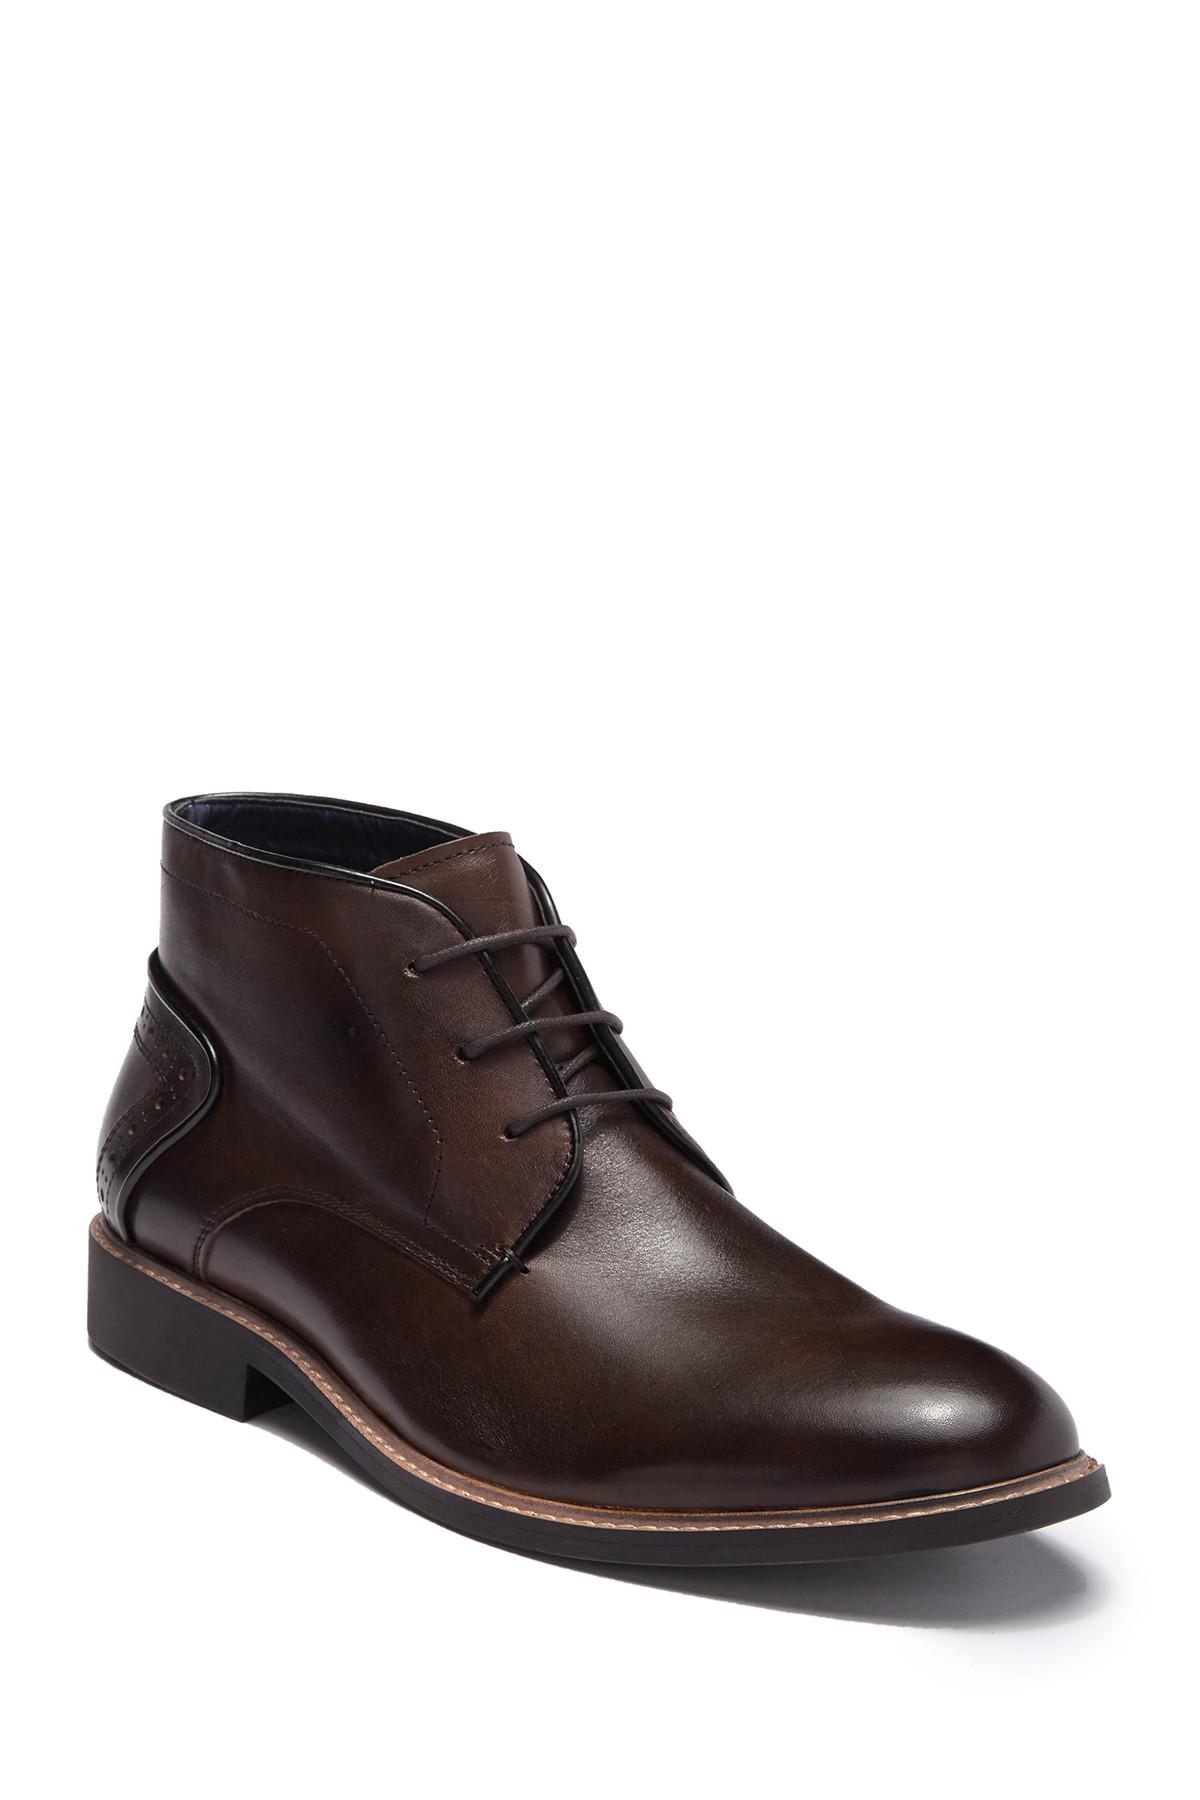 a32ed24a111 Lyst - Steve Madden Cronic Dress Chukka Boot in Brown for Men